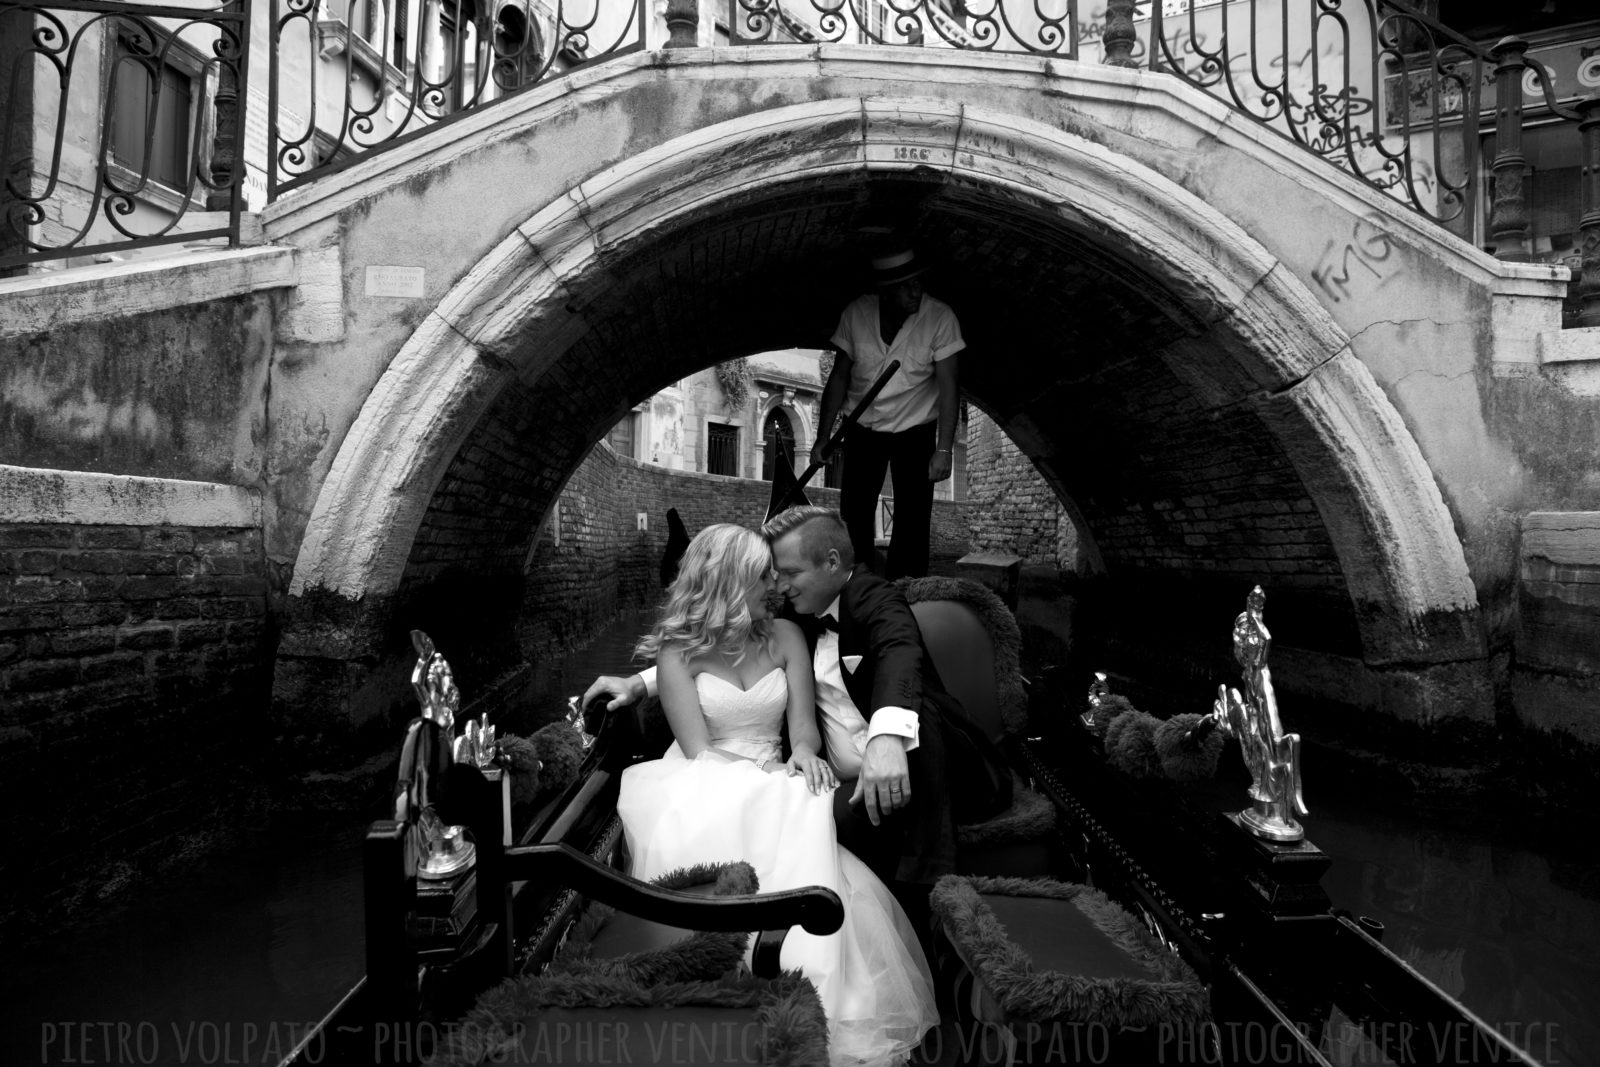 venice-wedding-photographer-photo-session-tour-20150702_01